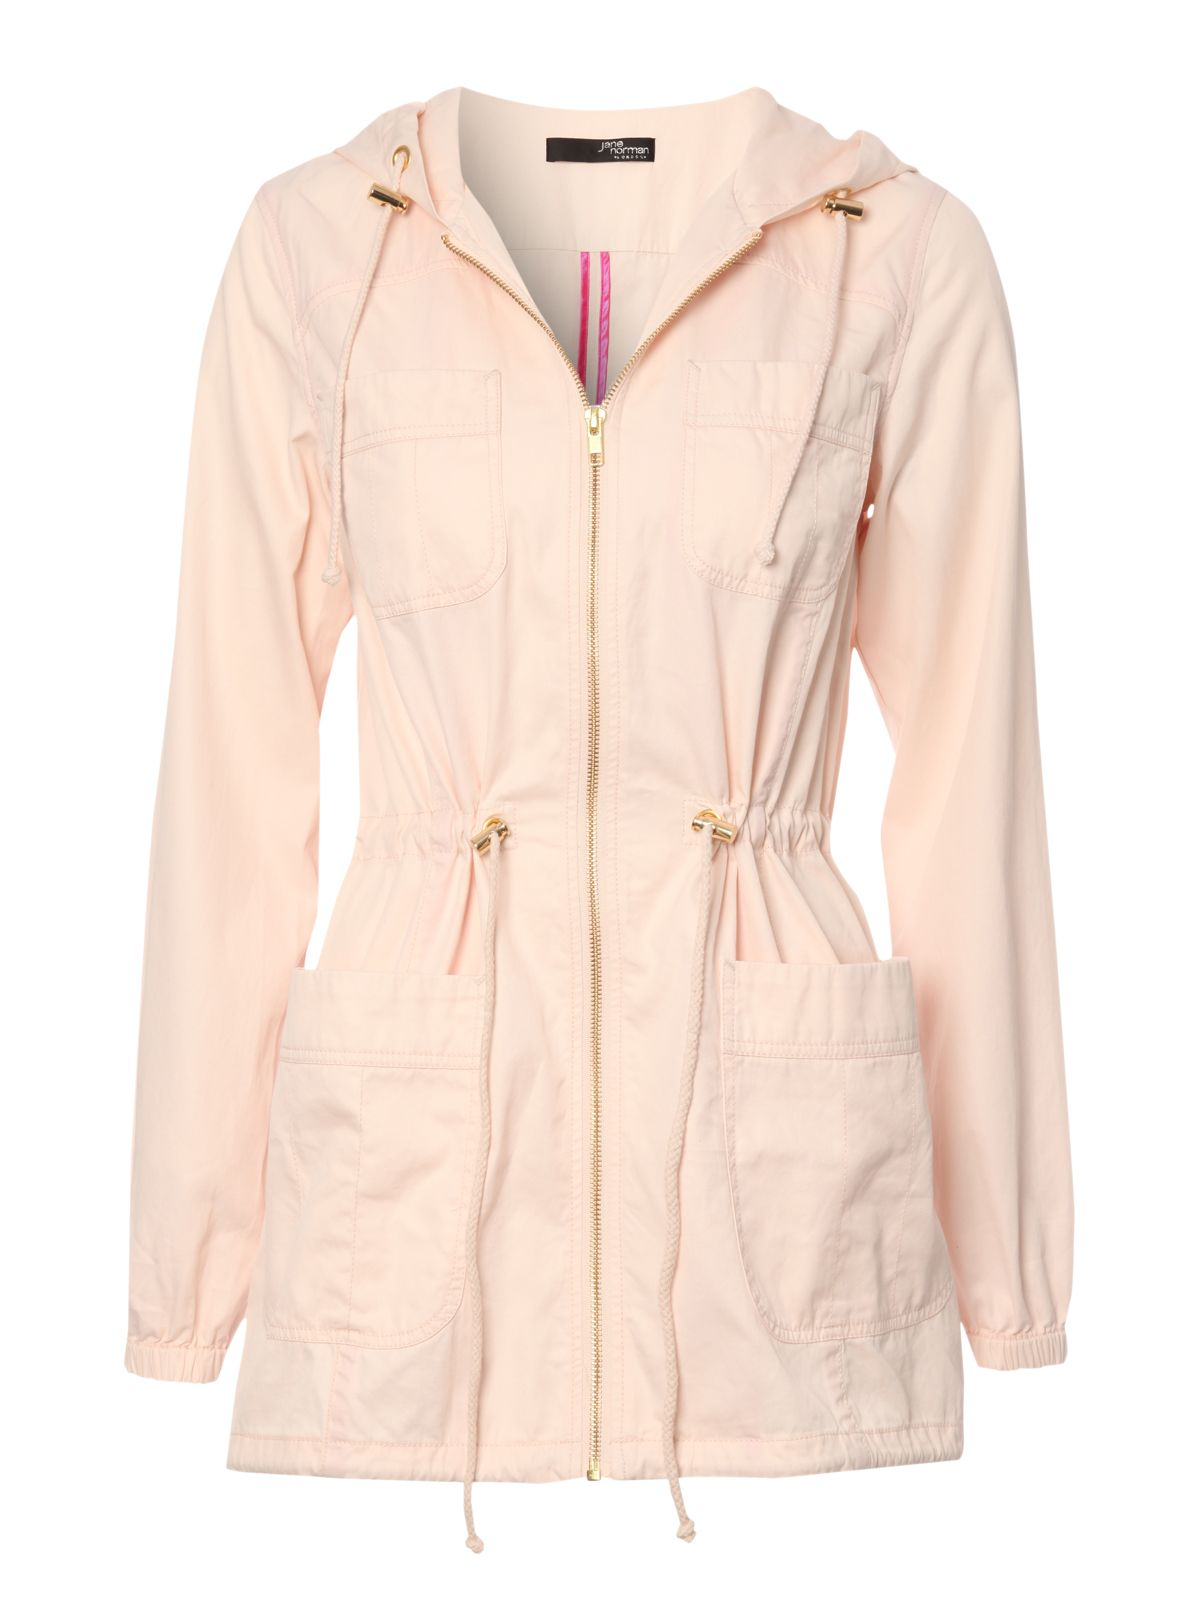 Jane norman Hooded Parka Jacket in Pink | Lyst